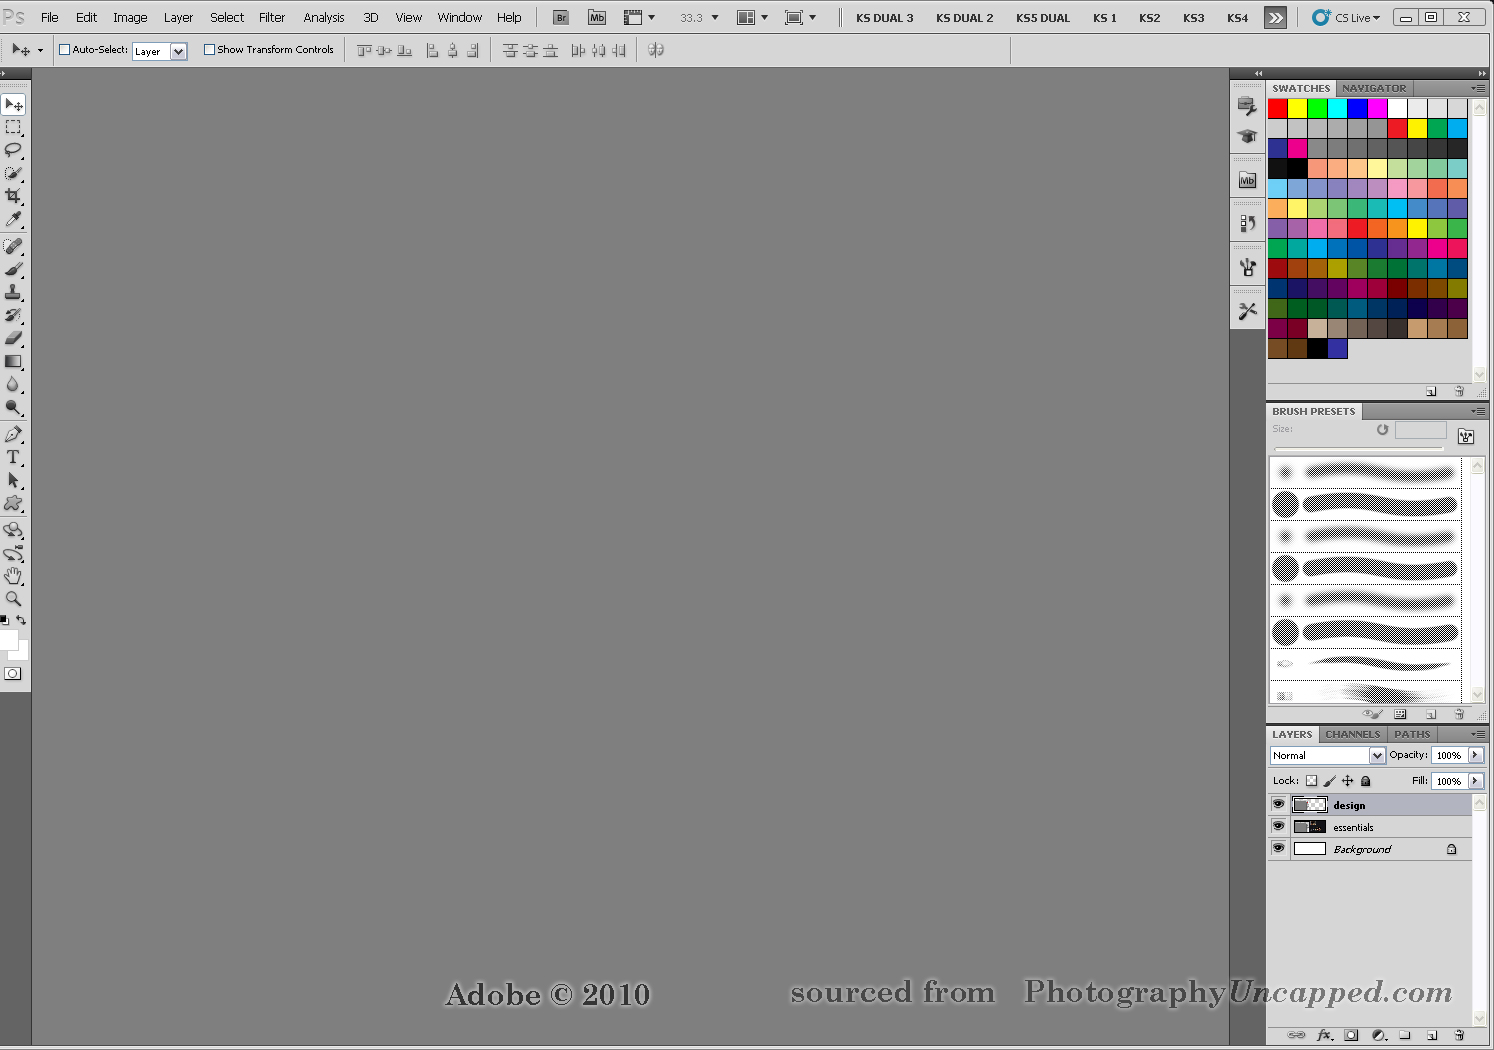 New Adobe Photoshop CS5 + CS5 Extended Workspaces Screen Captures